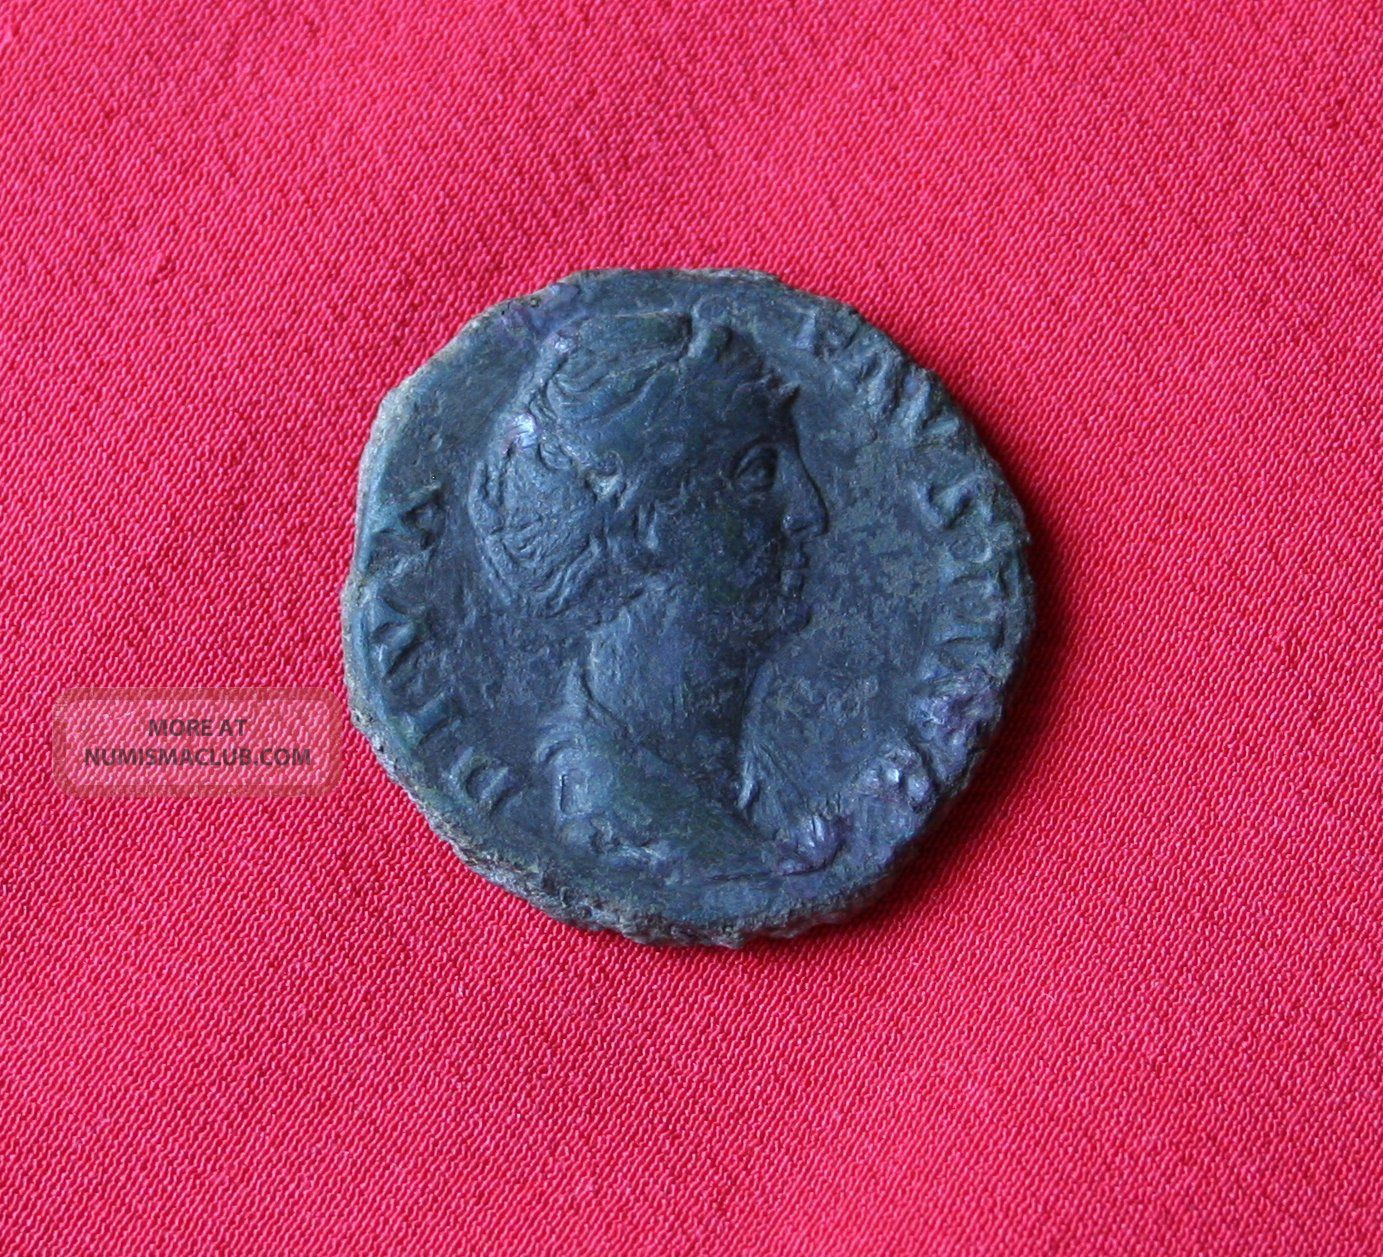 Faustina Sr Ae As. Coins: Ancient photo